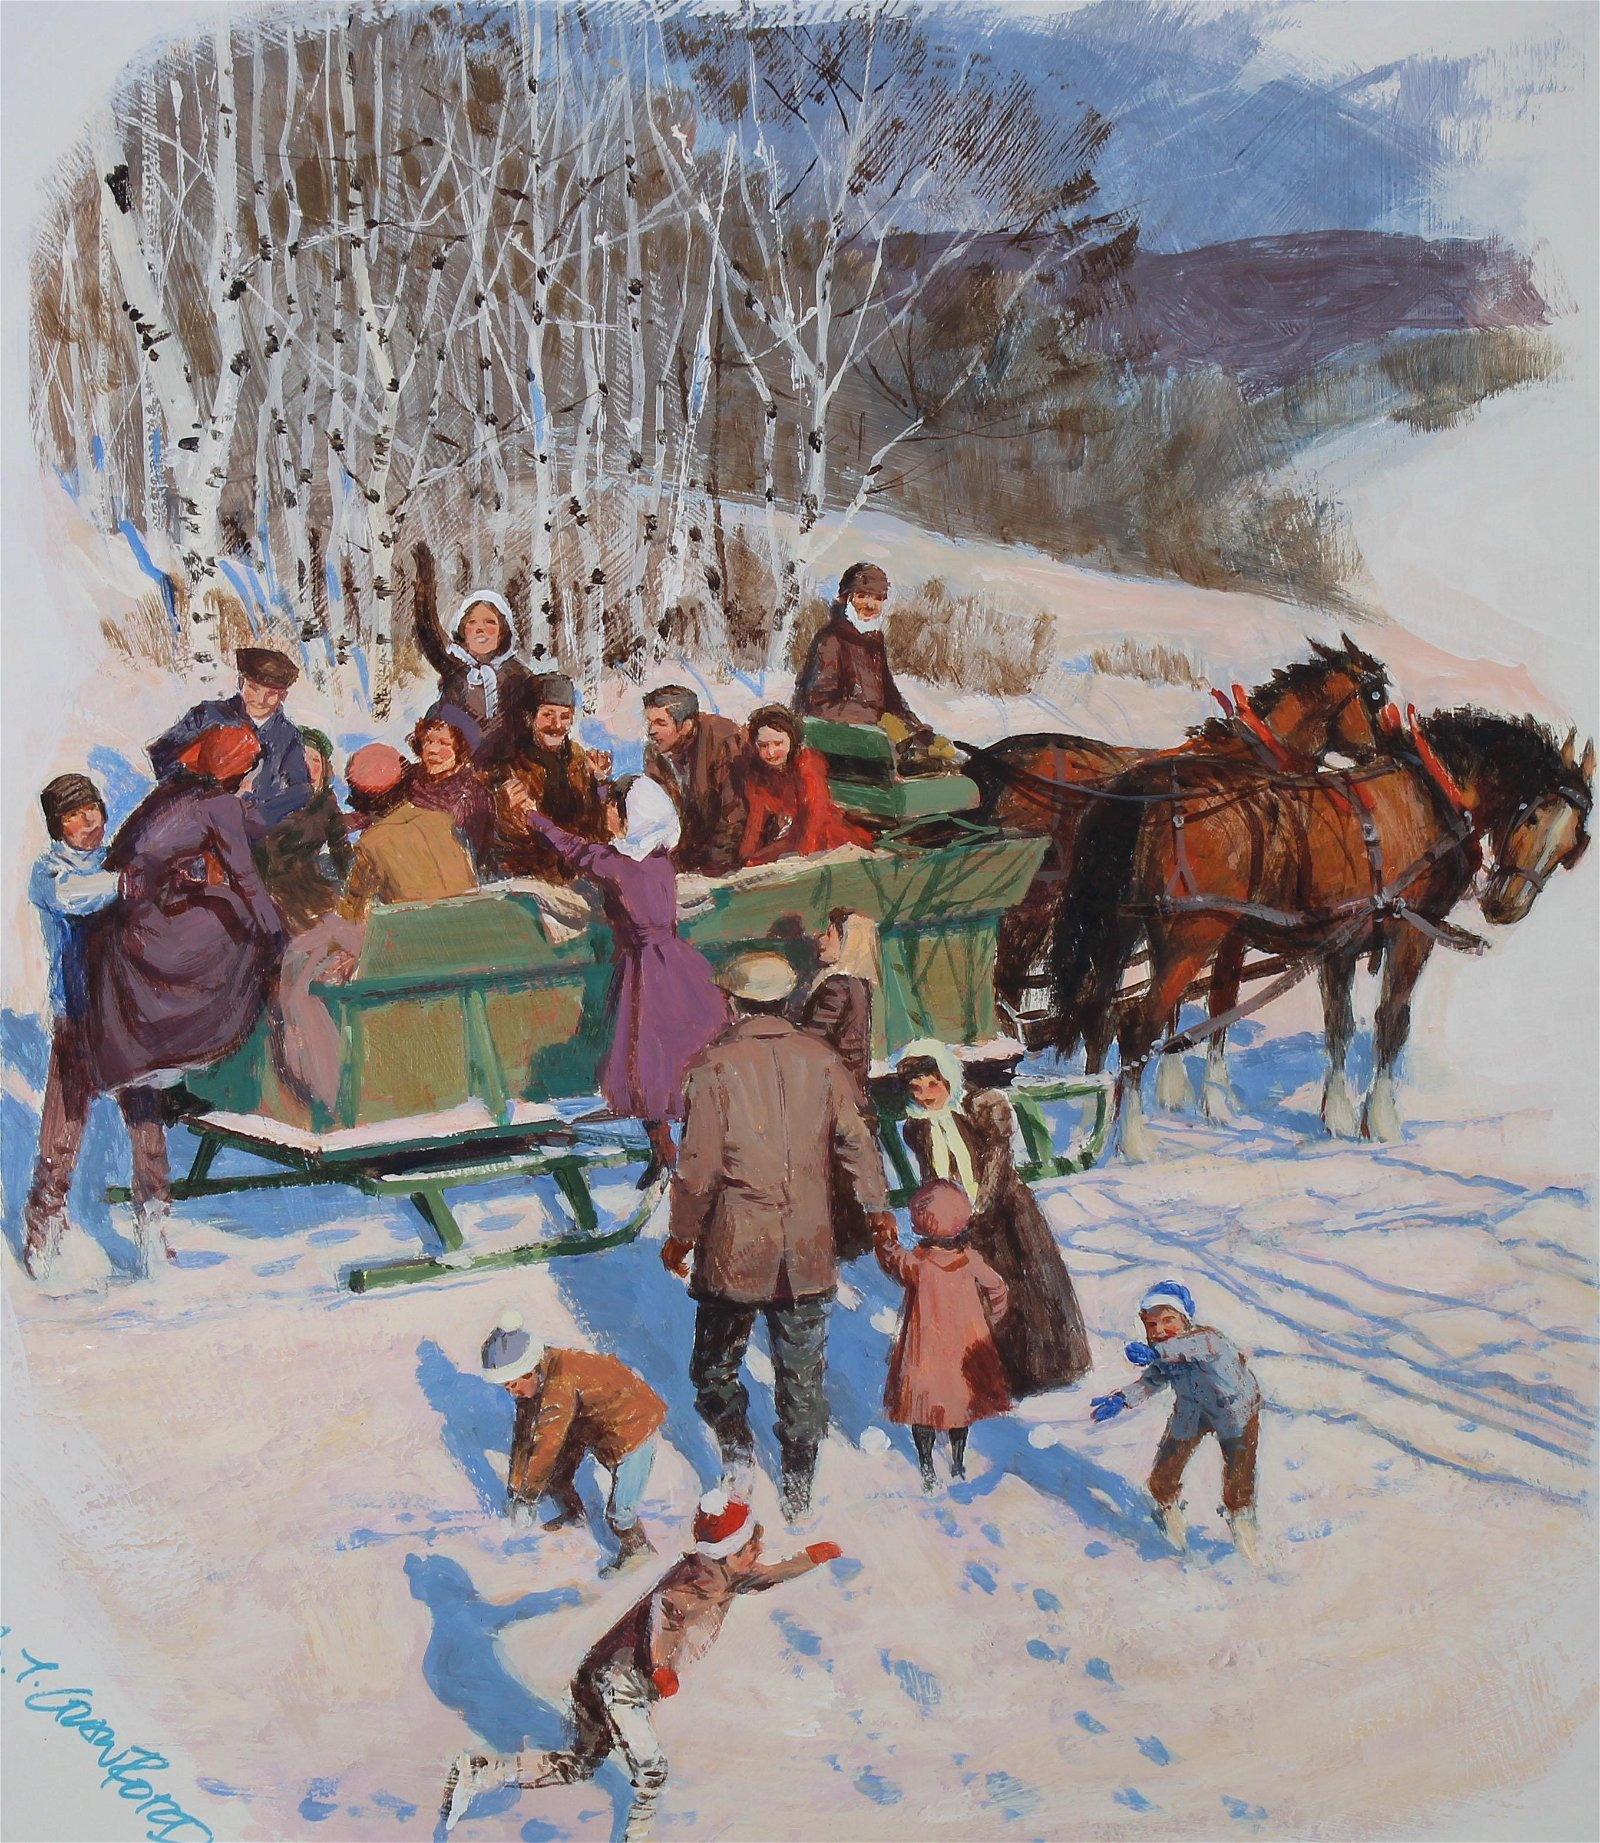 Mel Crawford (B. 1925) A Pause in the Sleigh Ride